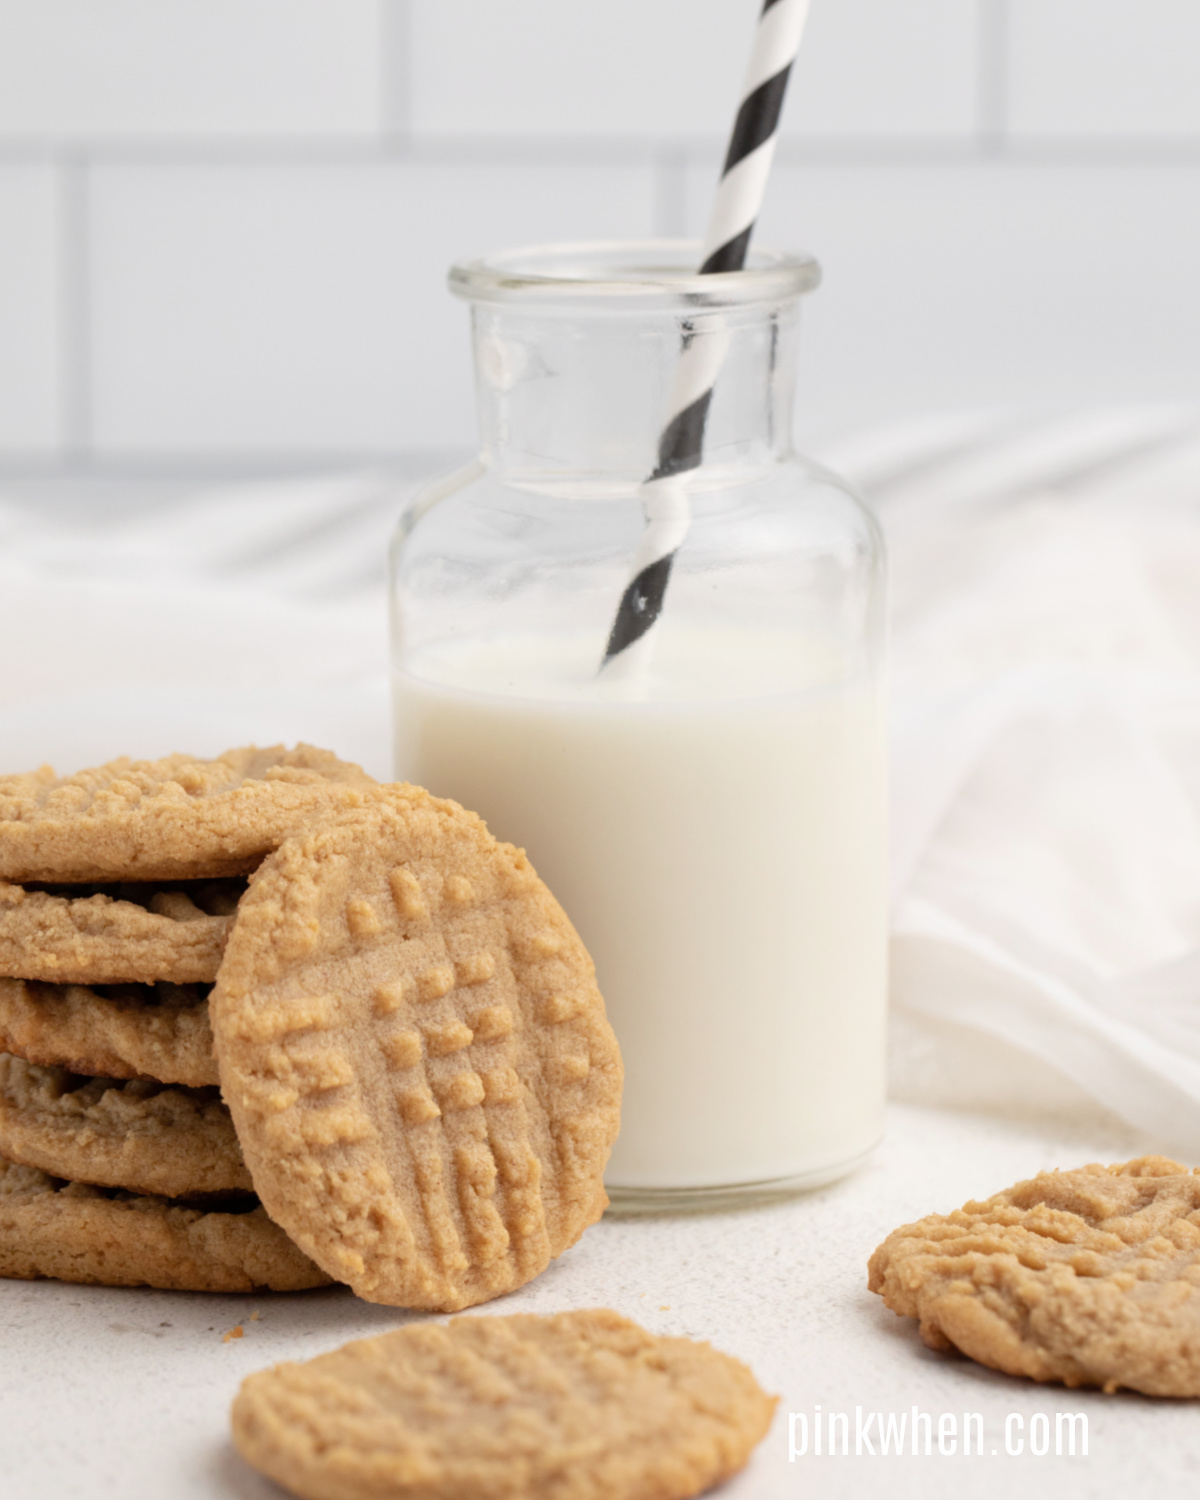 3 Ingredient Peanut Butter Cookies on a white table with a glass of milk.